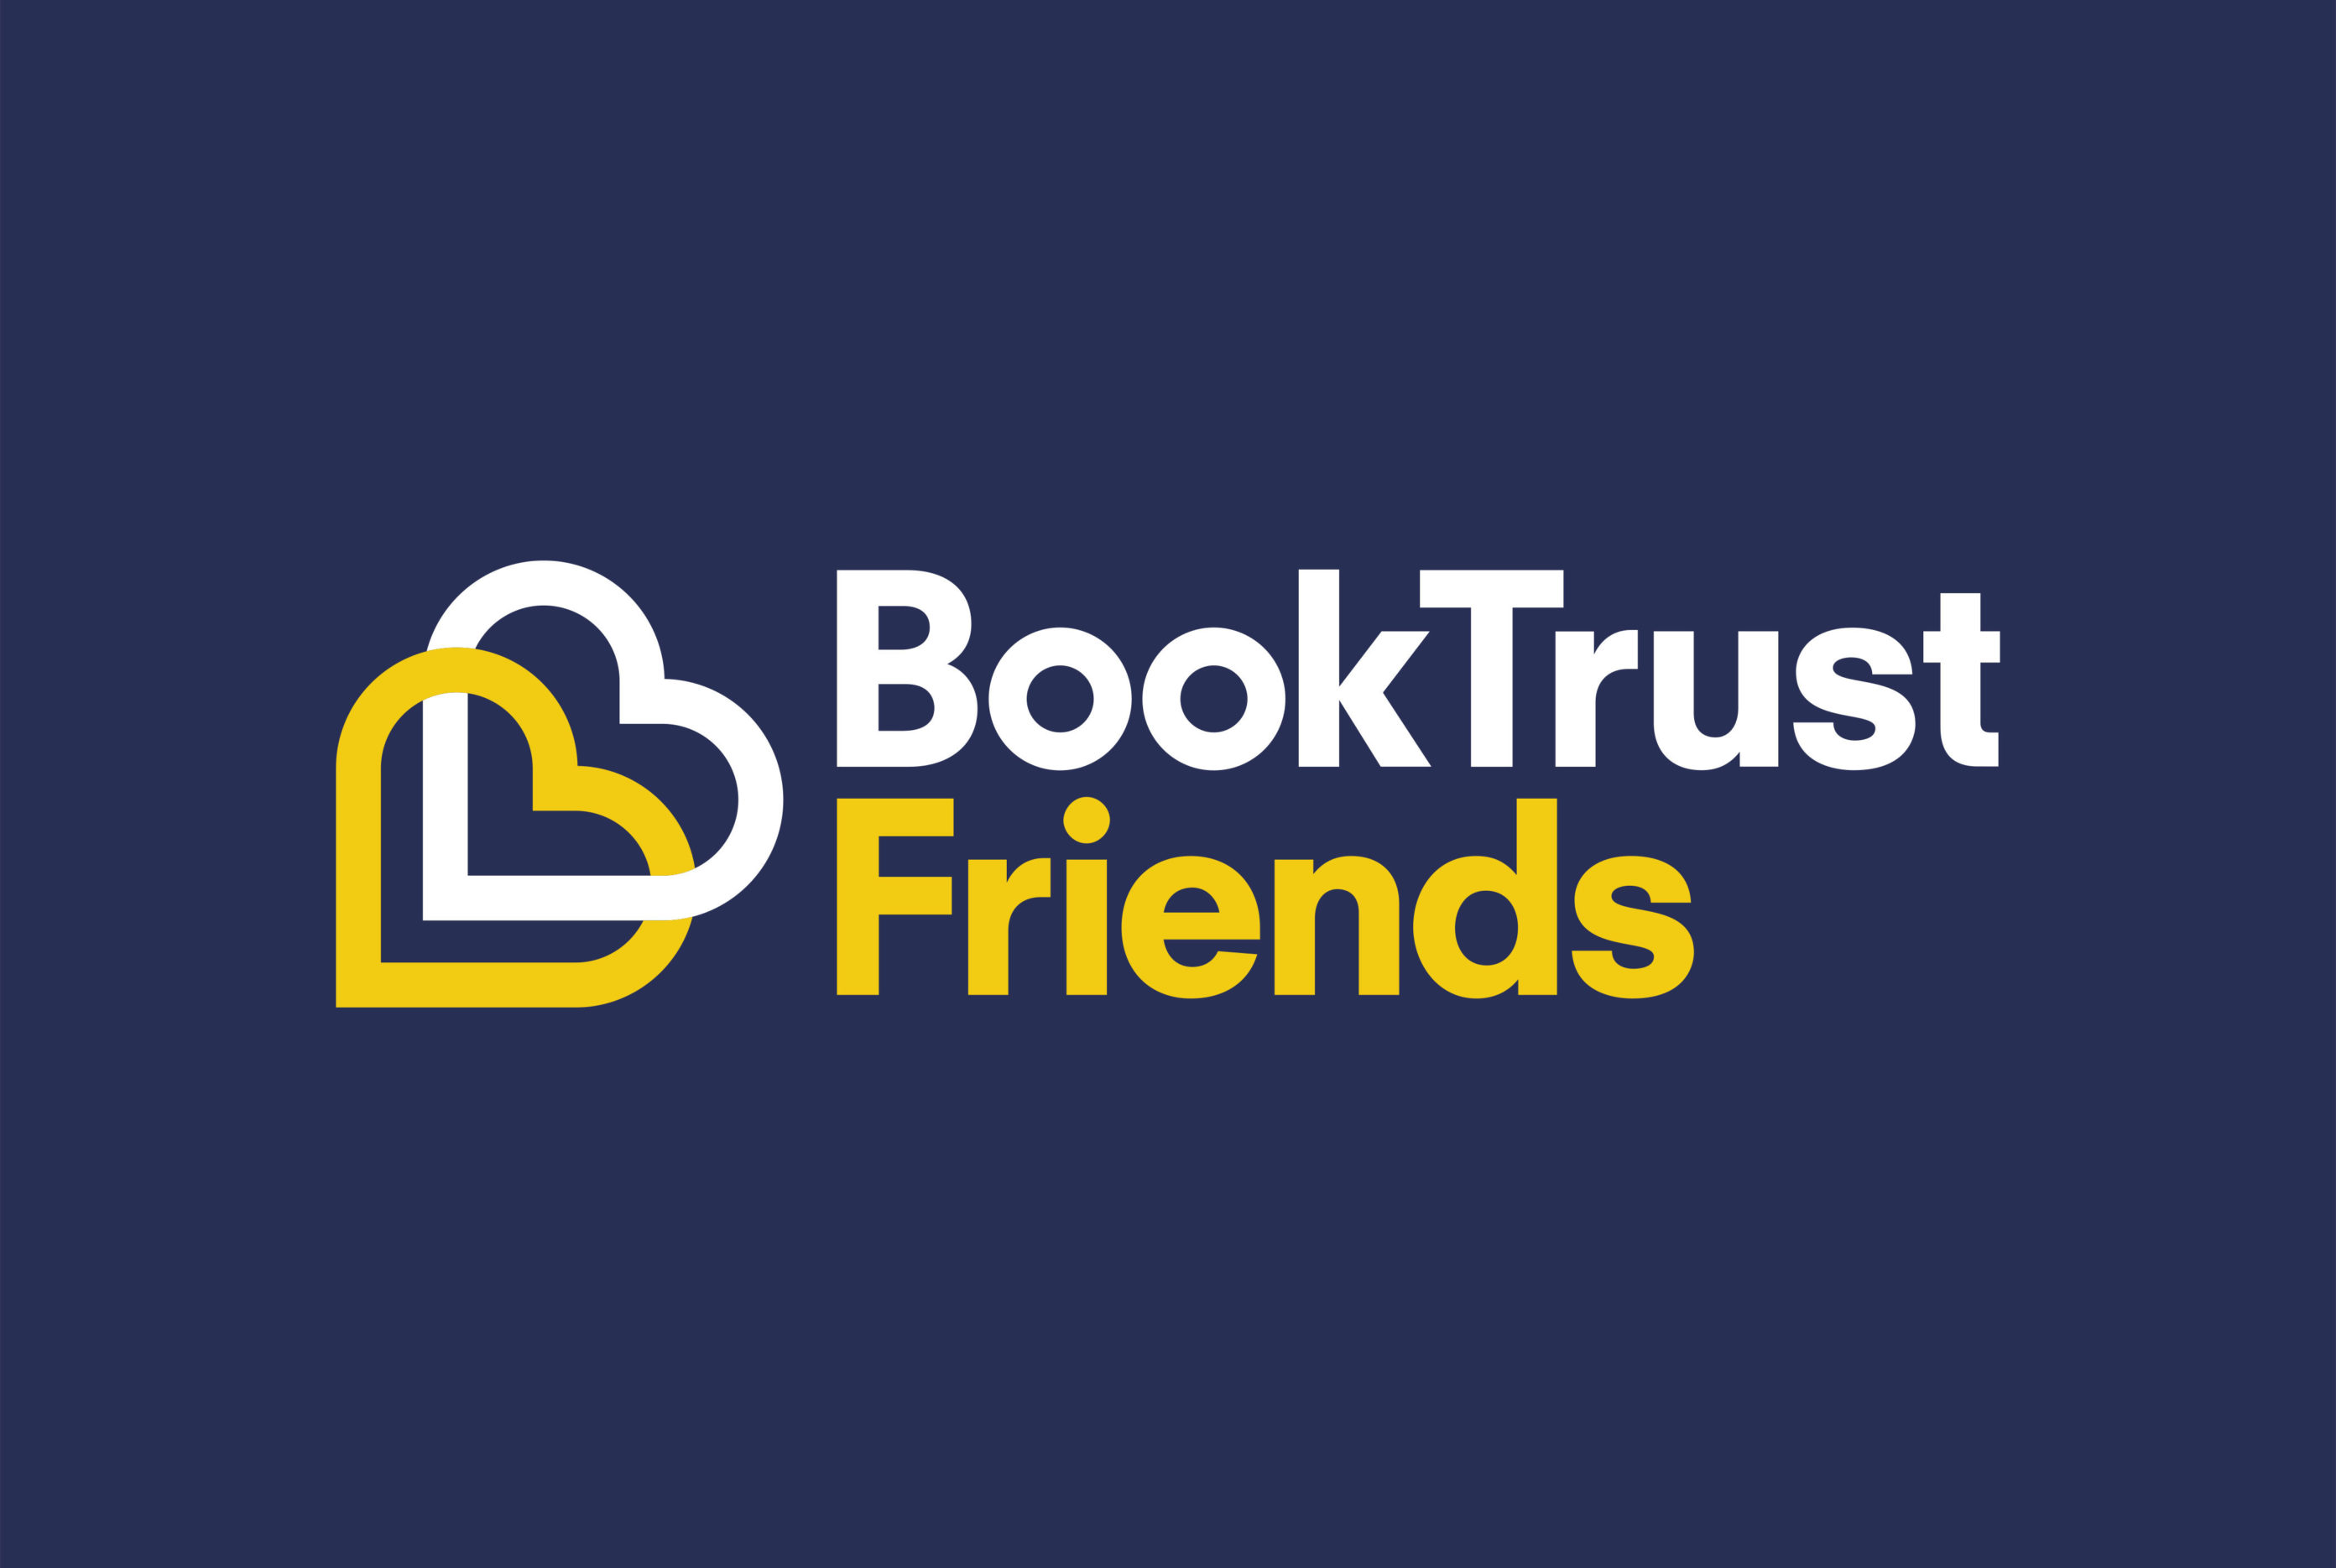 Book Trust Friends Identity Large Image 1400x940 1